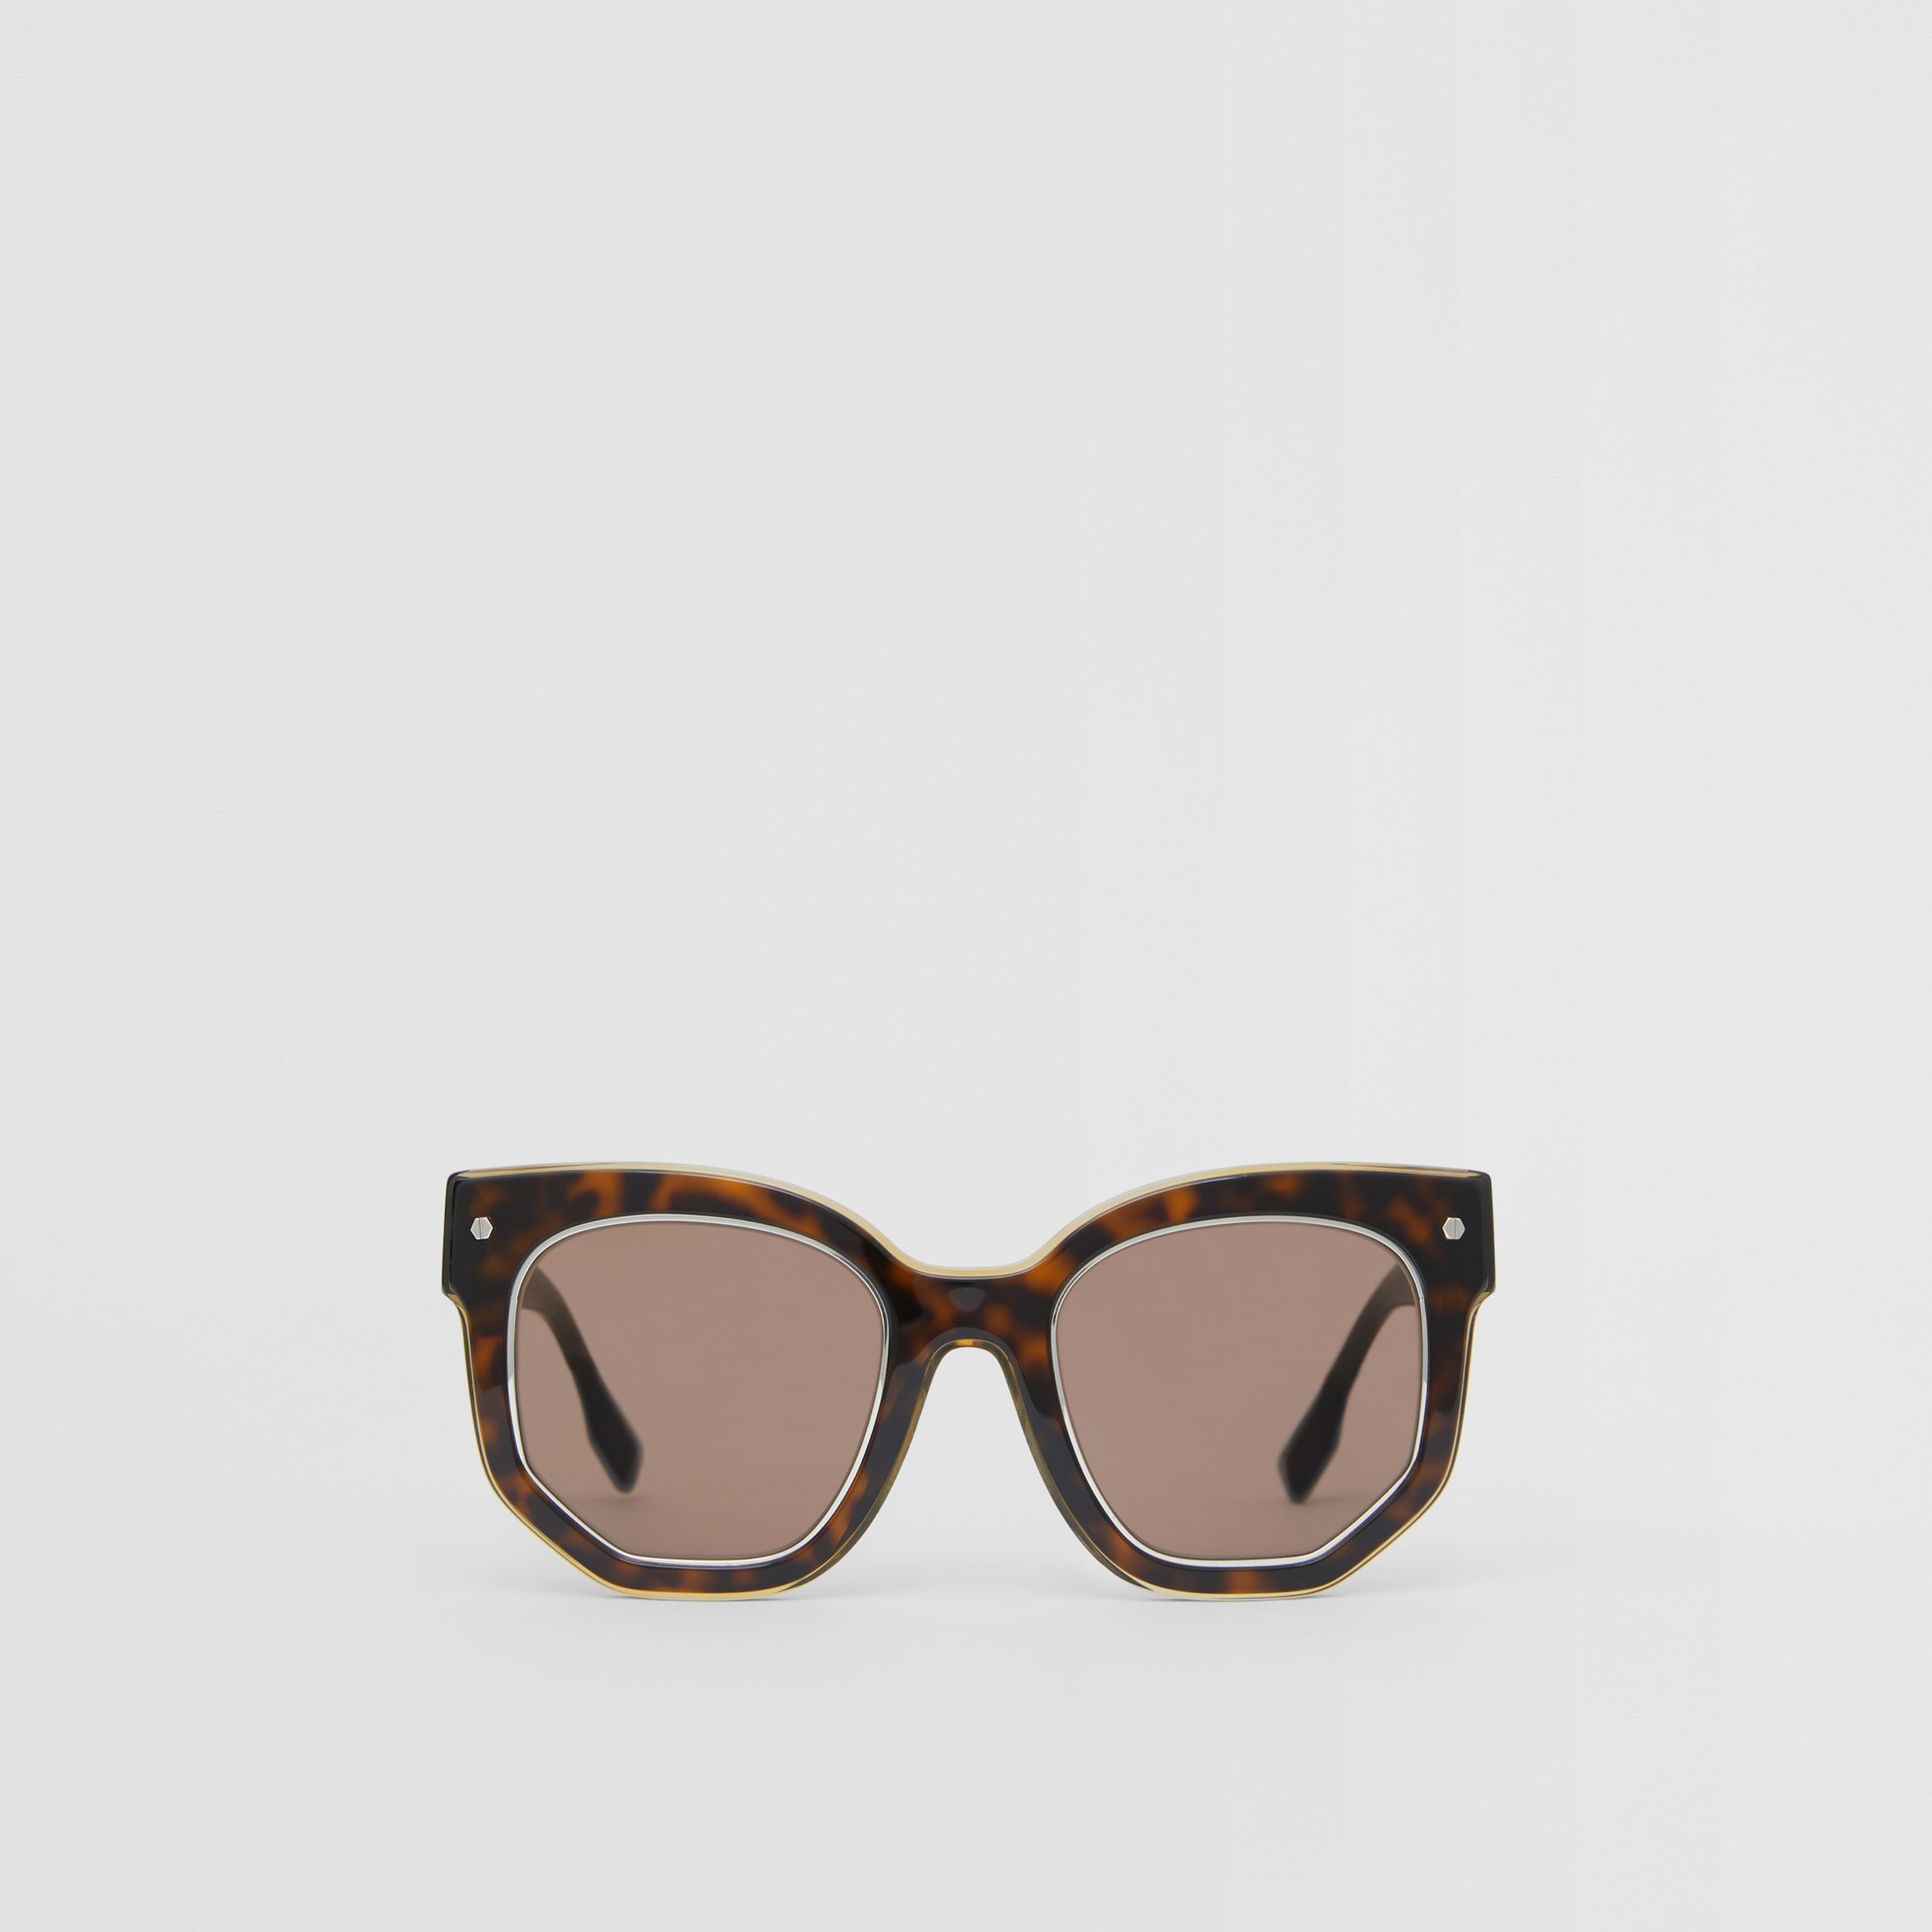 Geometric Frame Sunglasses in Tortoiseshell - Women | Burberry Australia - 1